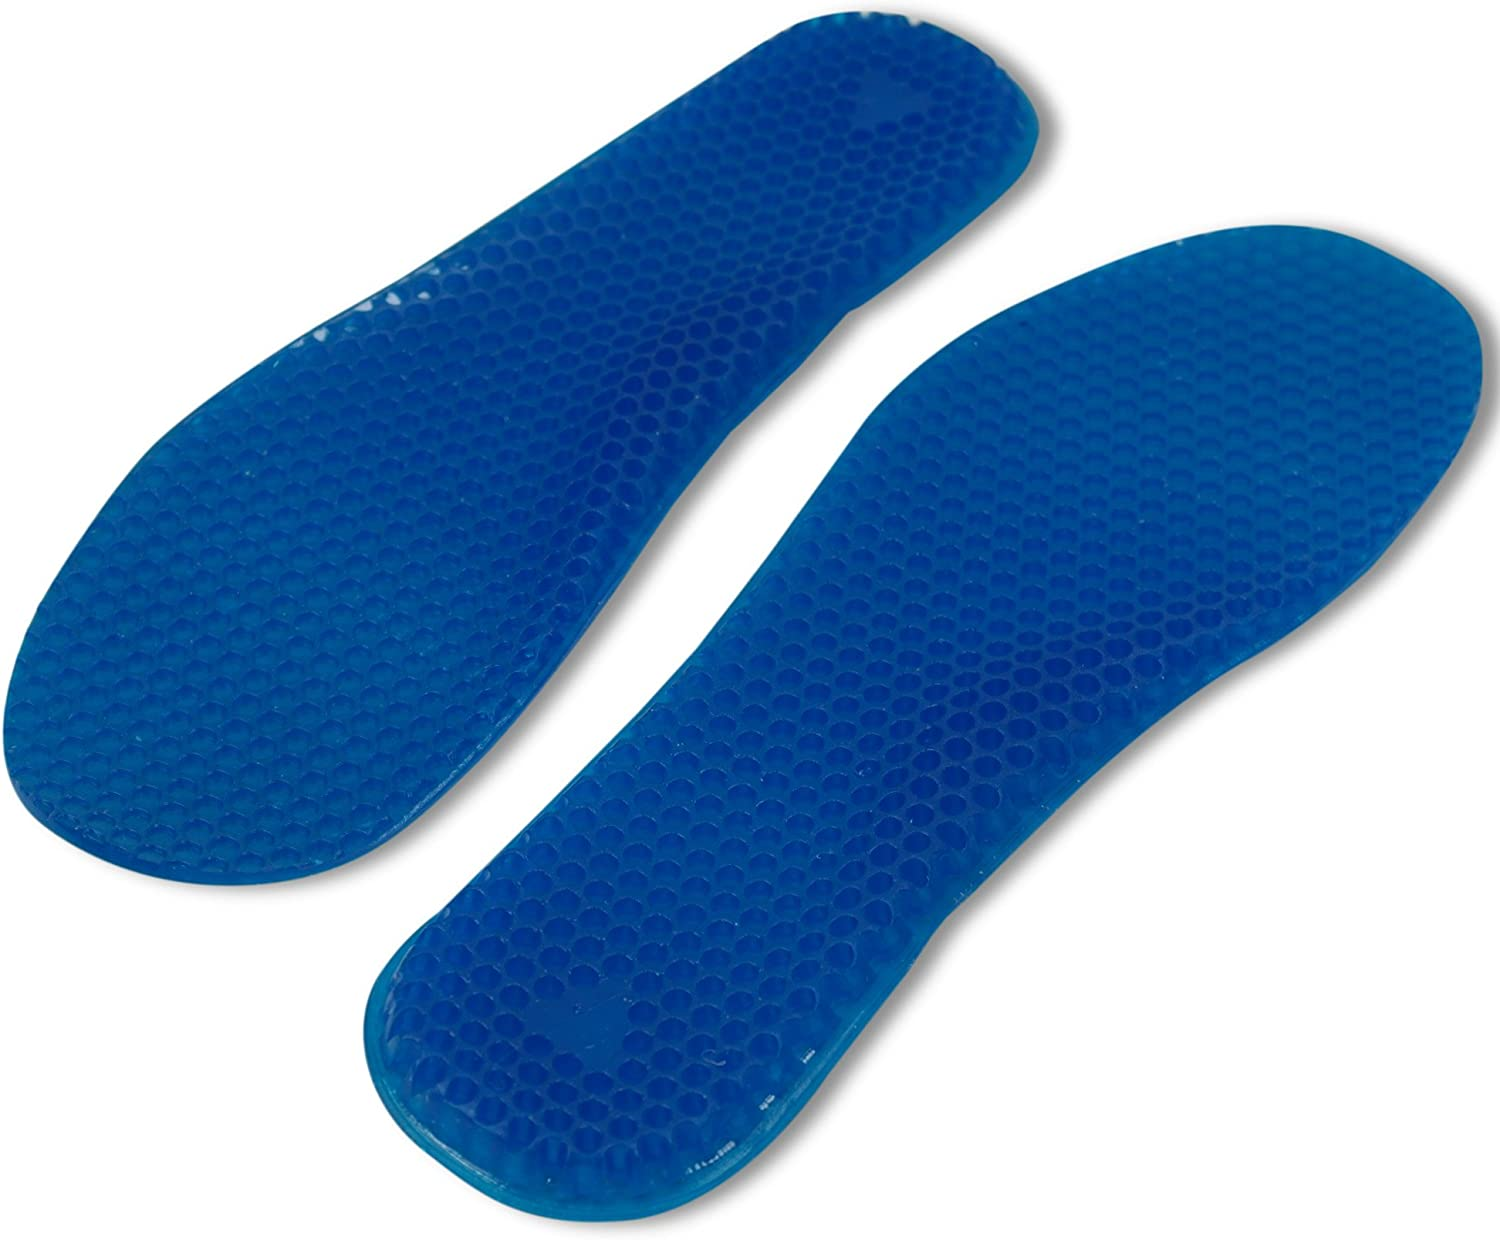 Shoe Replace Your Old Boot Quality Shock Absorbing Gel Insoles and Trainer Insoles and Feel The Difference Great for Running = Ladies